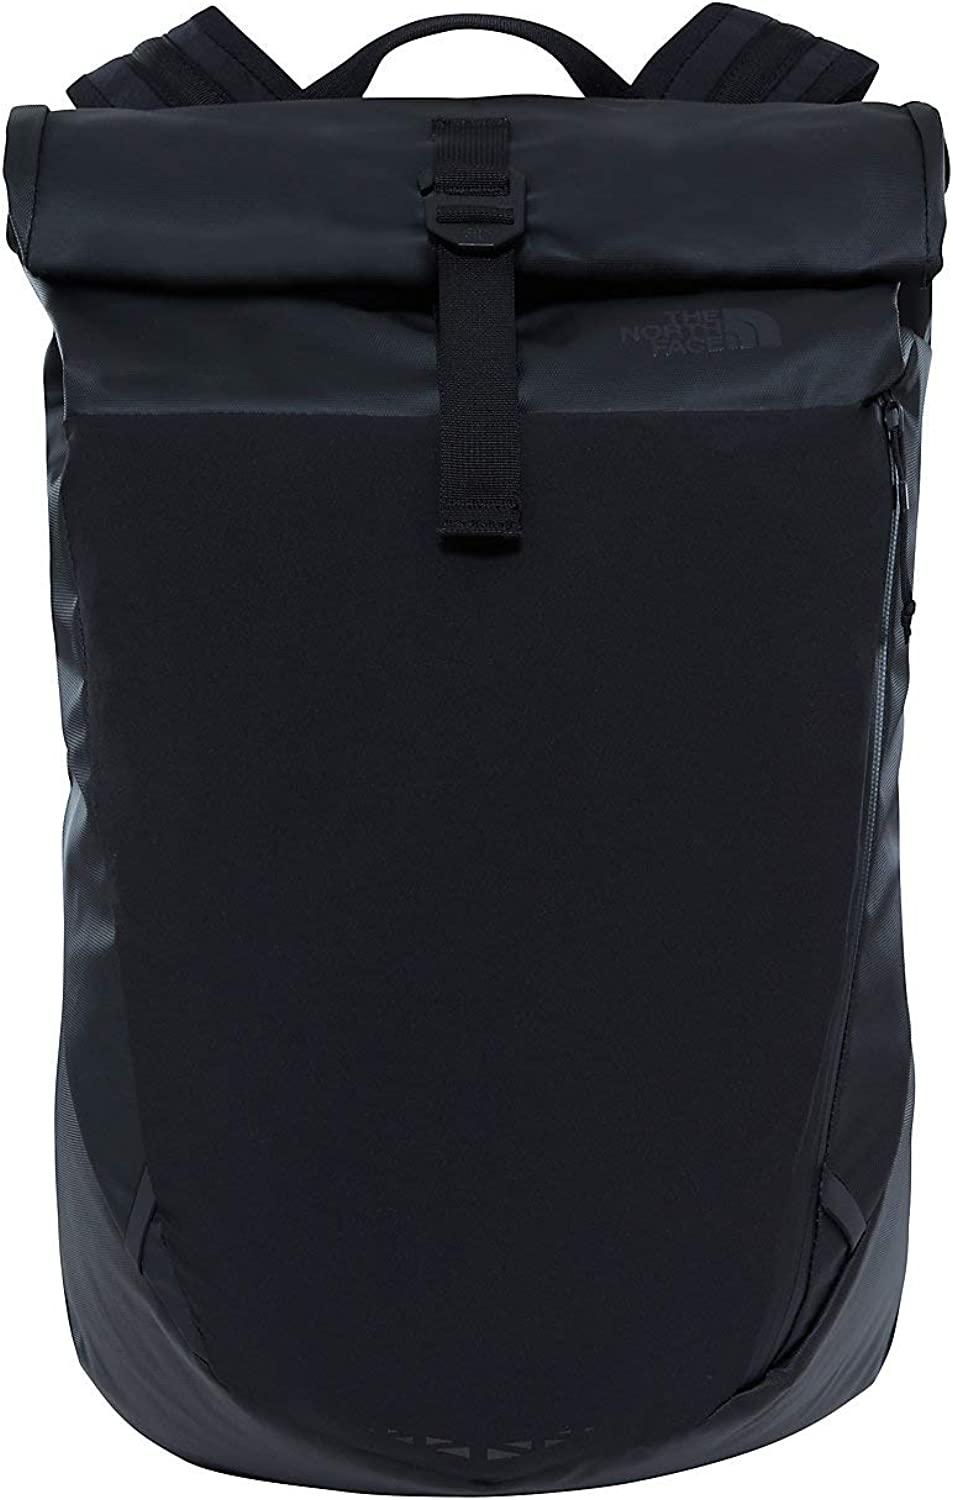 THE NORTH FACE Peckham 27 - Tagesrucksack